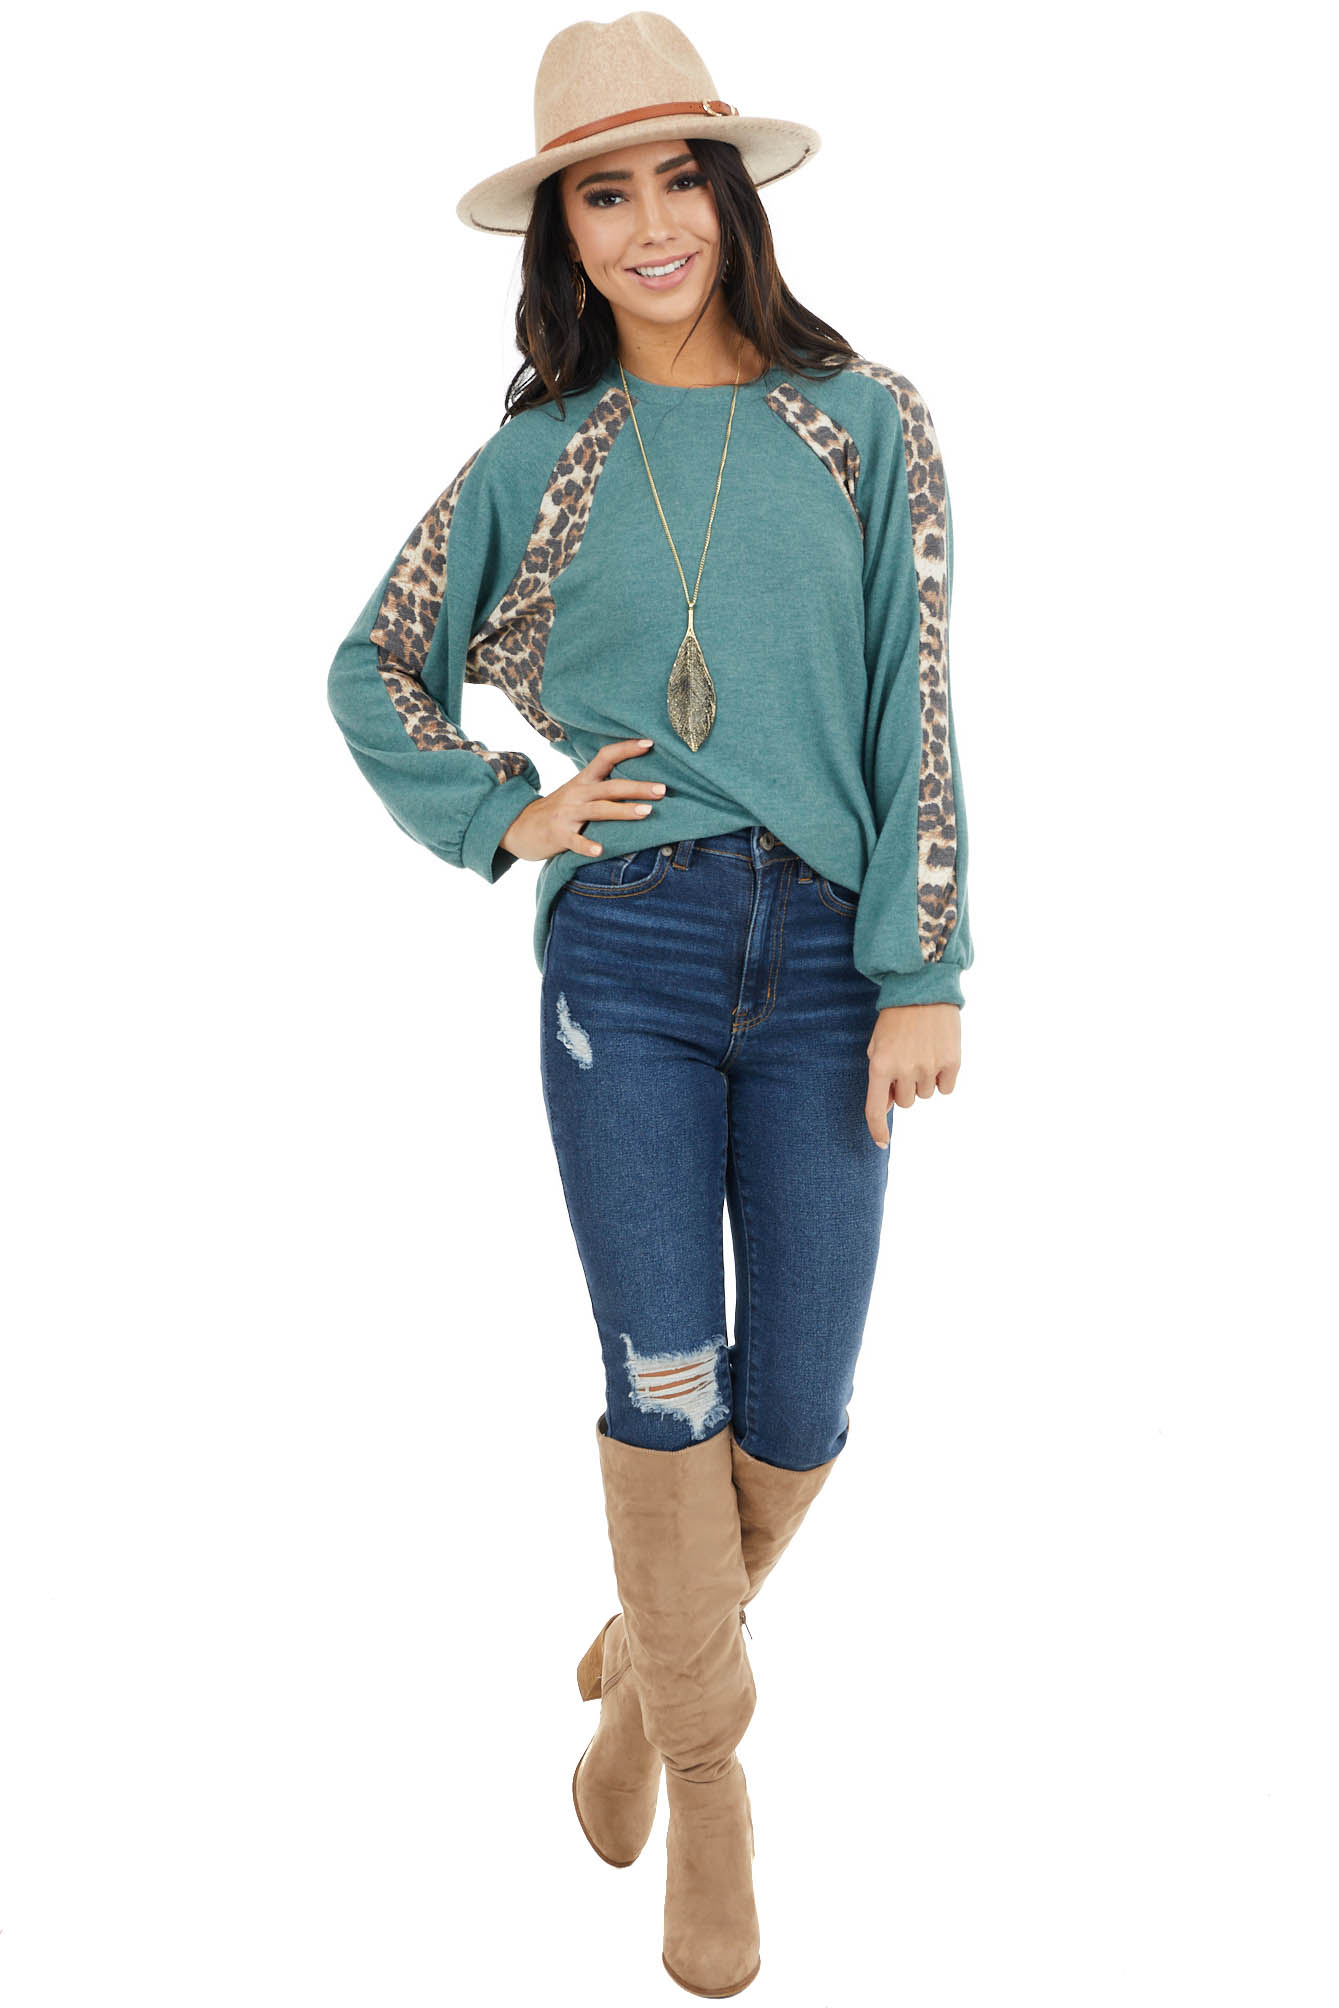 Pine Green and Leopard Print Colorblock Long Sleeve Top